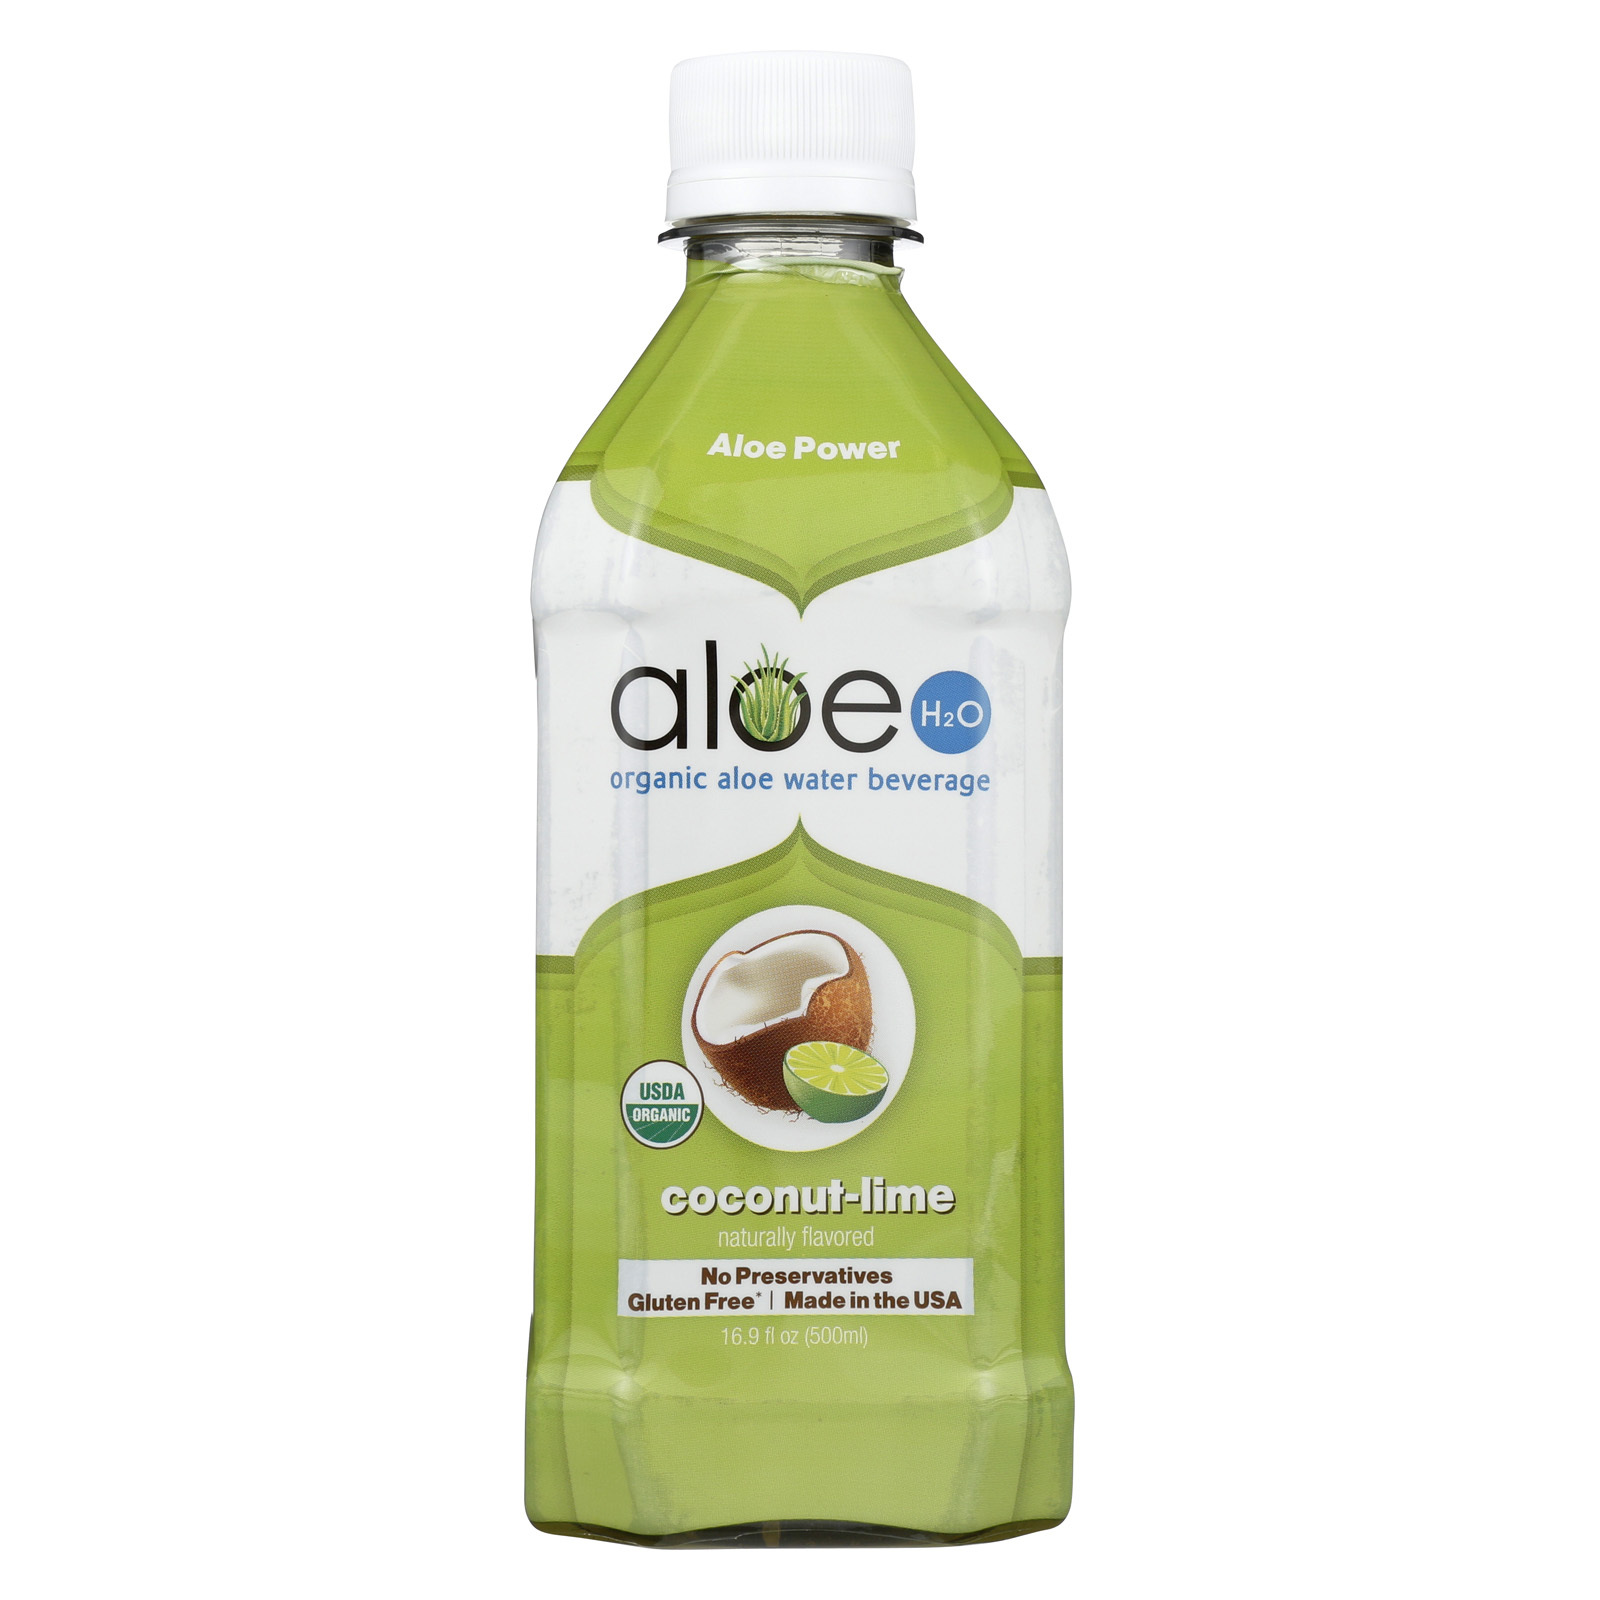 Lily of The Desert Aloe H20 - Coconut Lime - Case of 12 - 16.9 Fl oz.